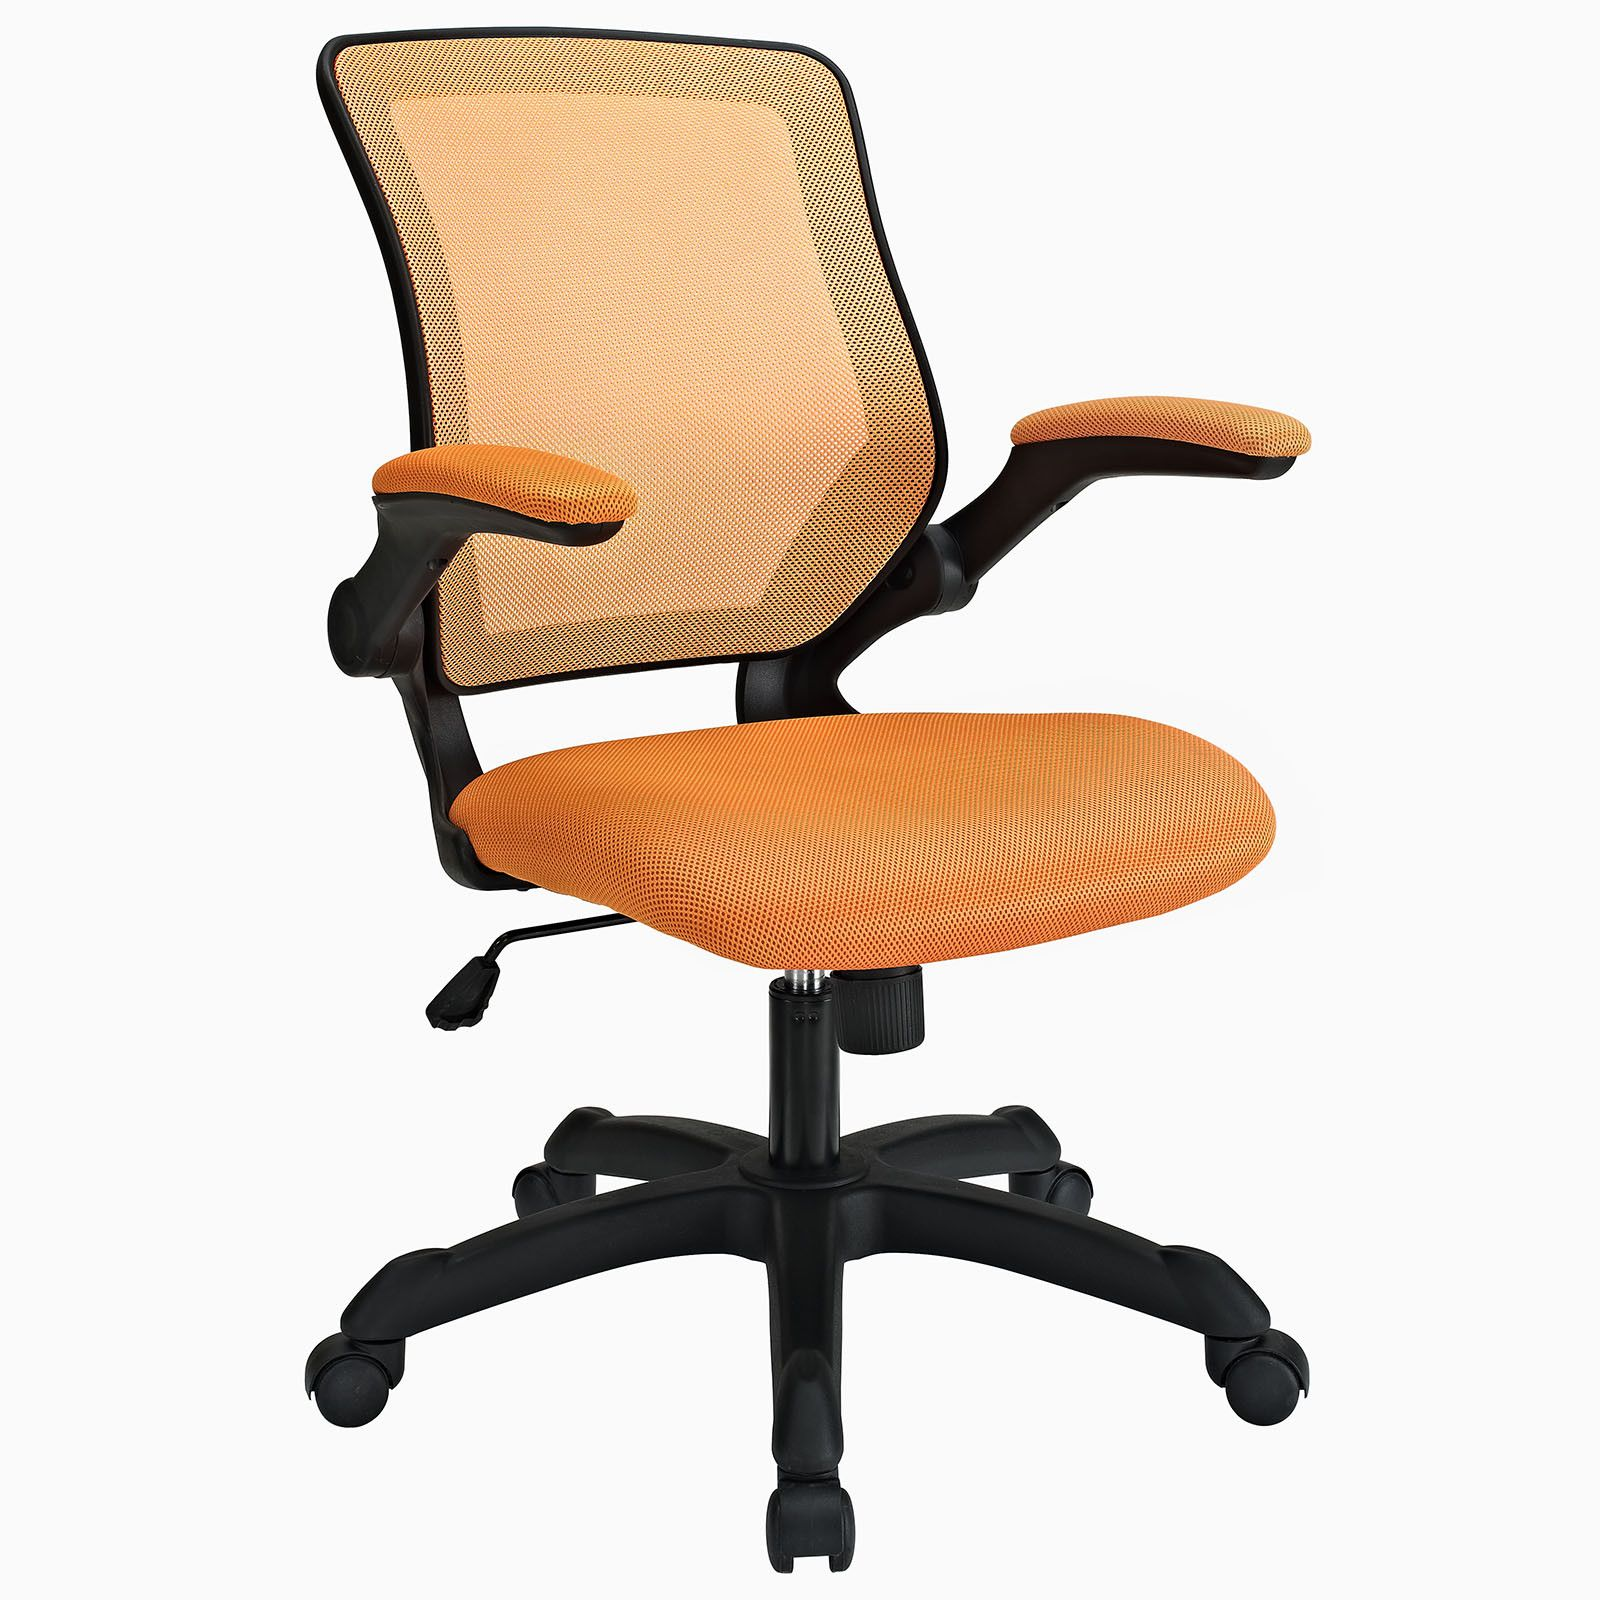 Modway Veer HighBack Mesh Executive Office Chair